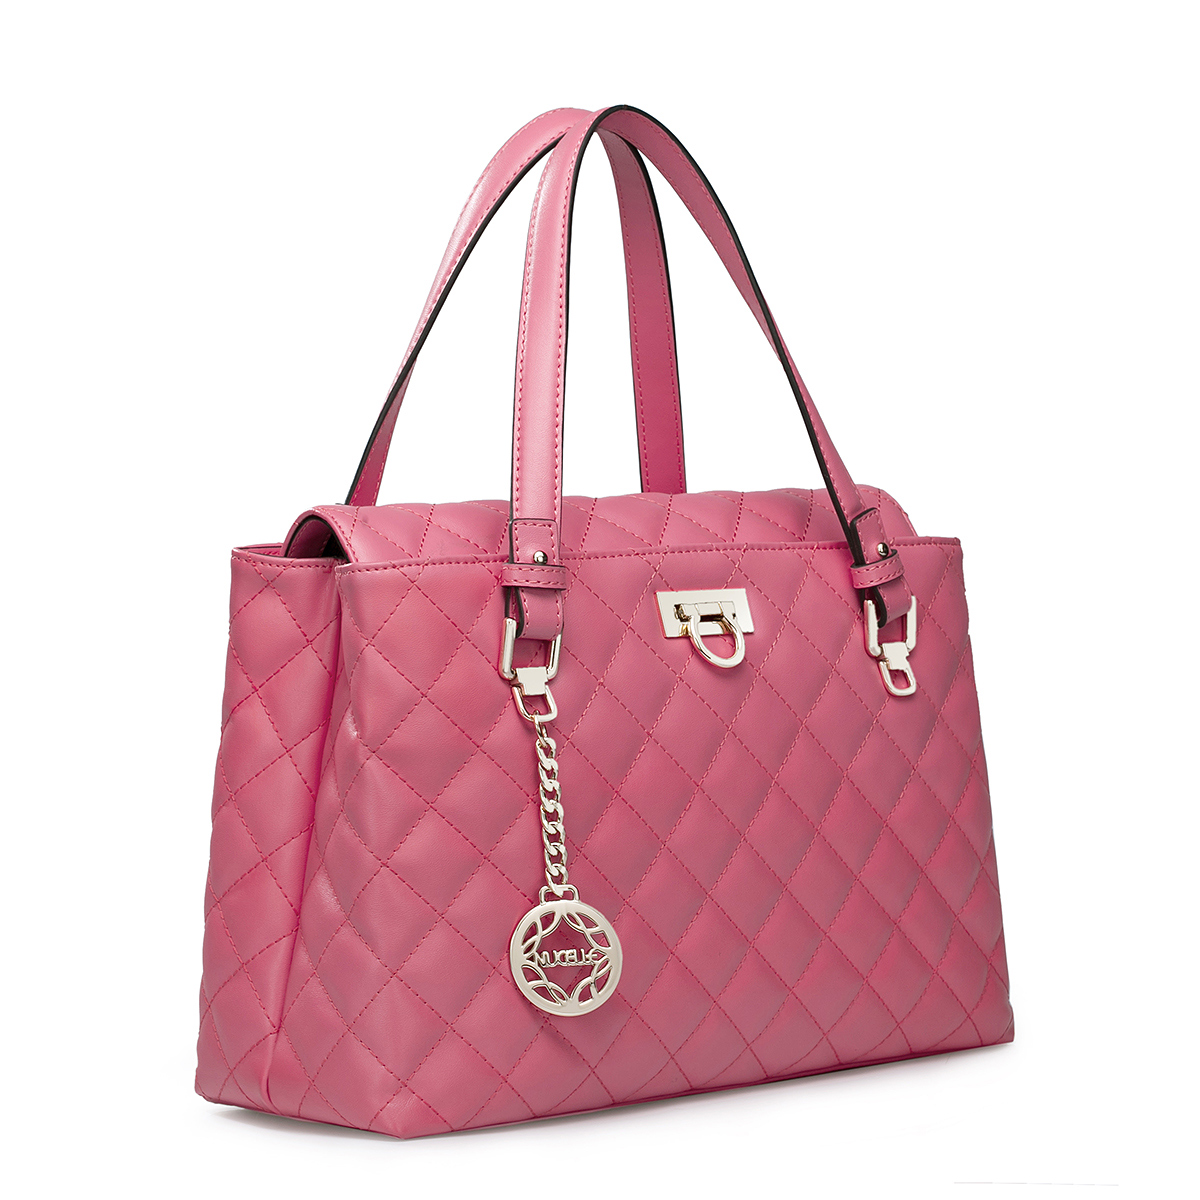 Find great deals on eBay for Ladies Pink Handbags in Women's Clothing, Handbags and Purses. Shop with confidence.